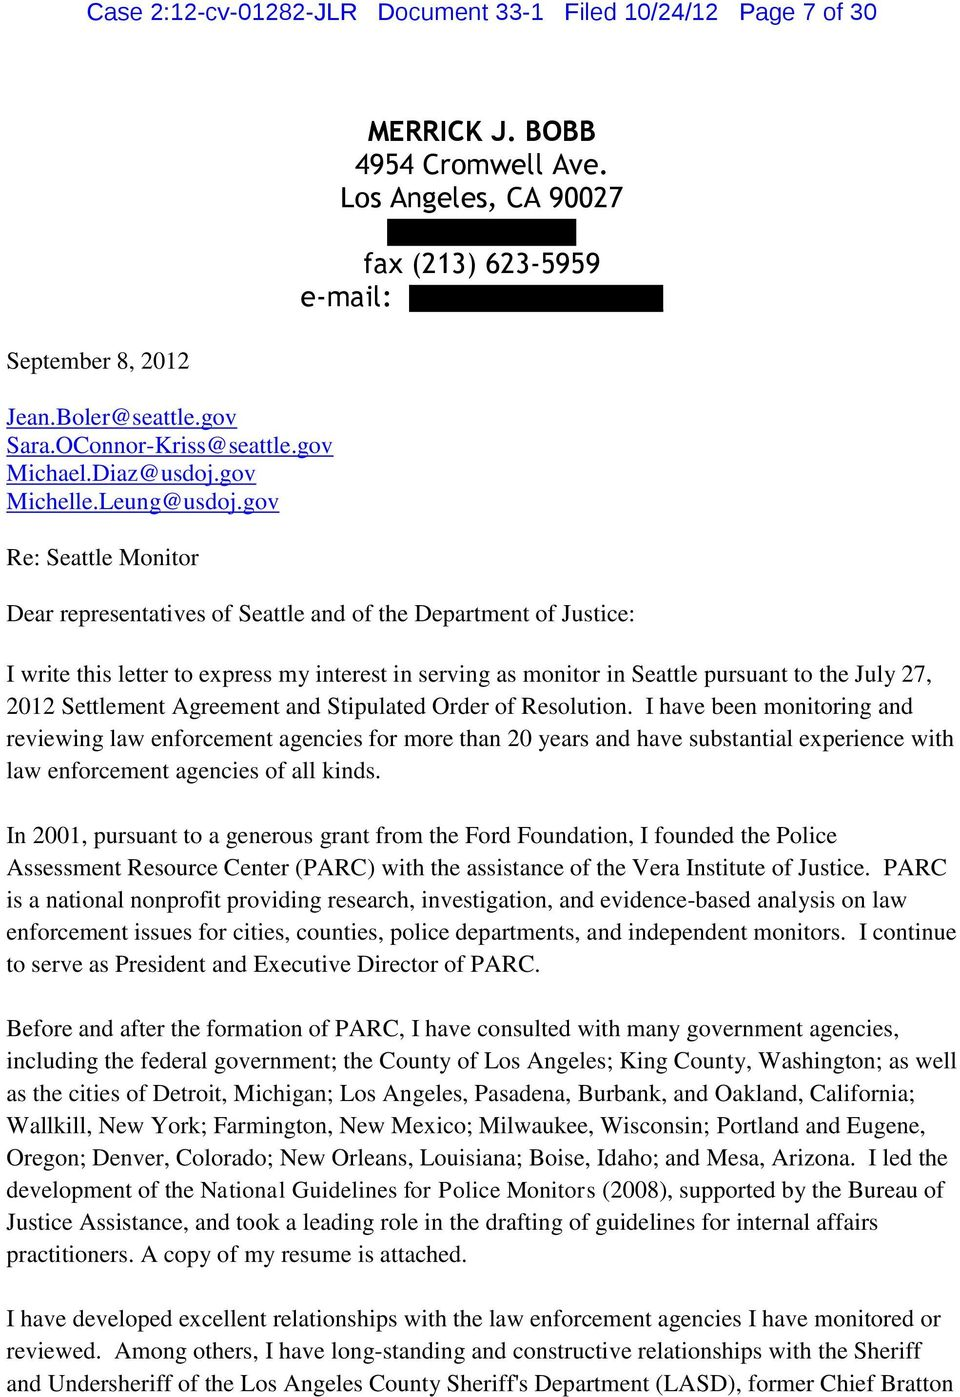 Los Angeles, CA 90027 fax (213) 623-5959 e-mail: Dear representatives of Seattle and of the Department of Justice: I write this letter to express my interest in serving as monitor in Seattle pursuant